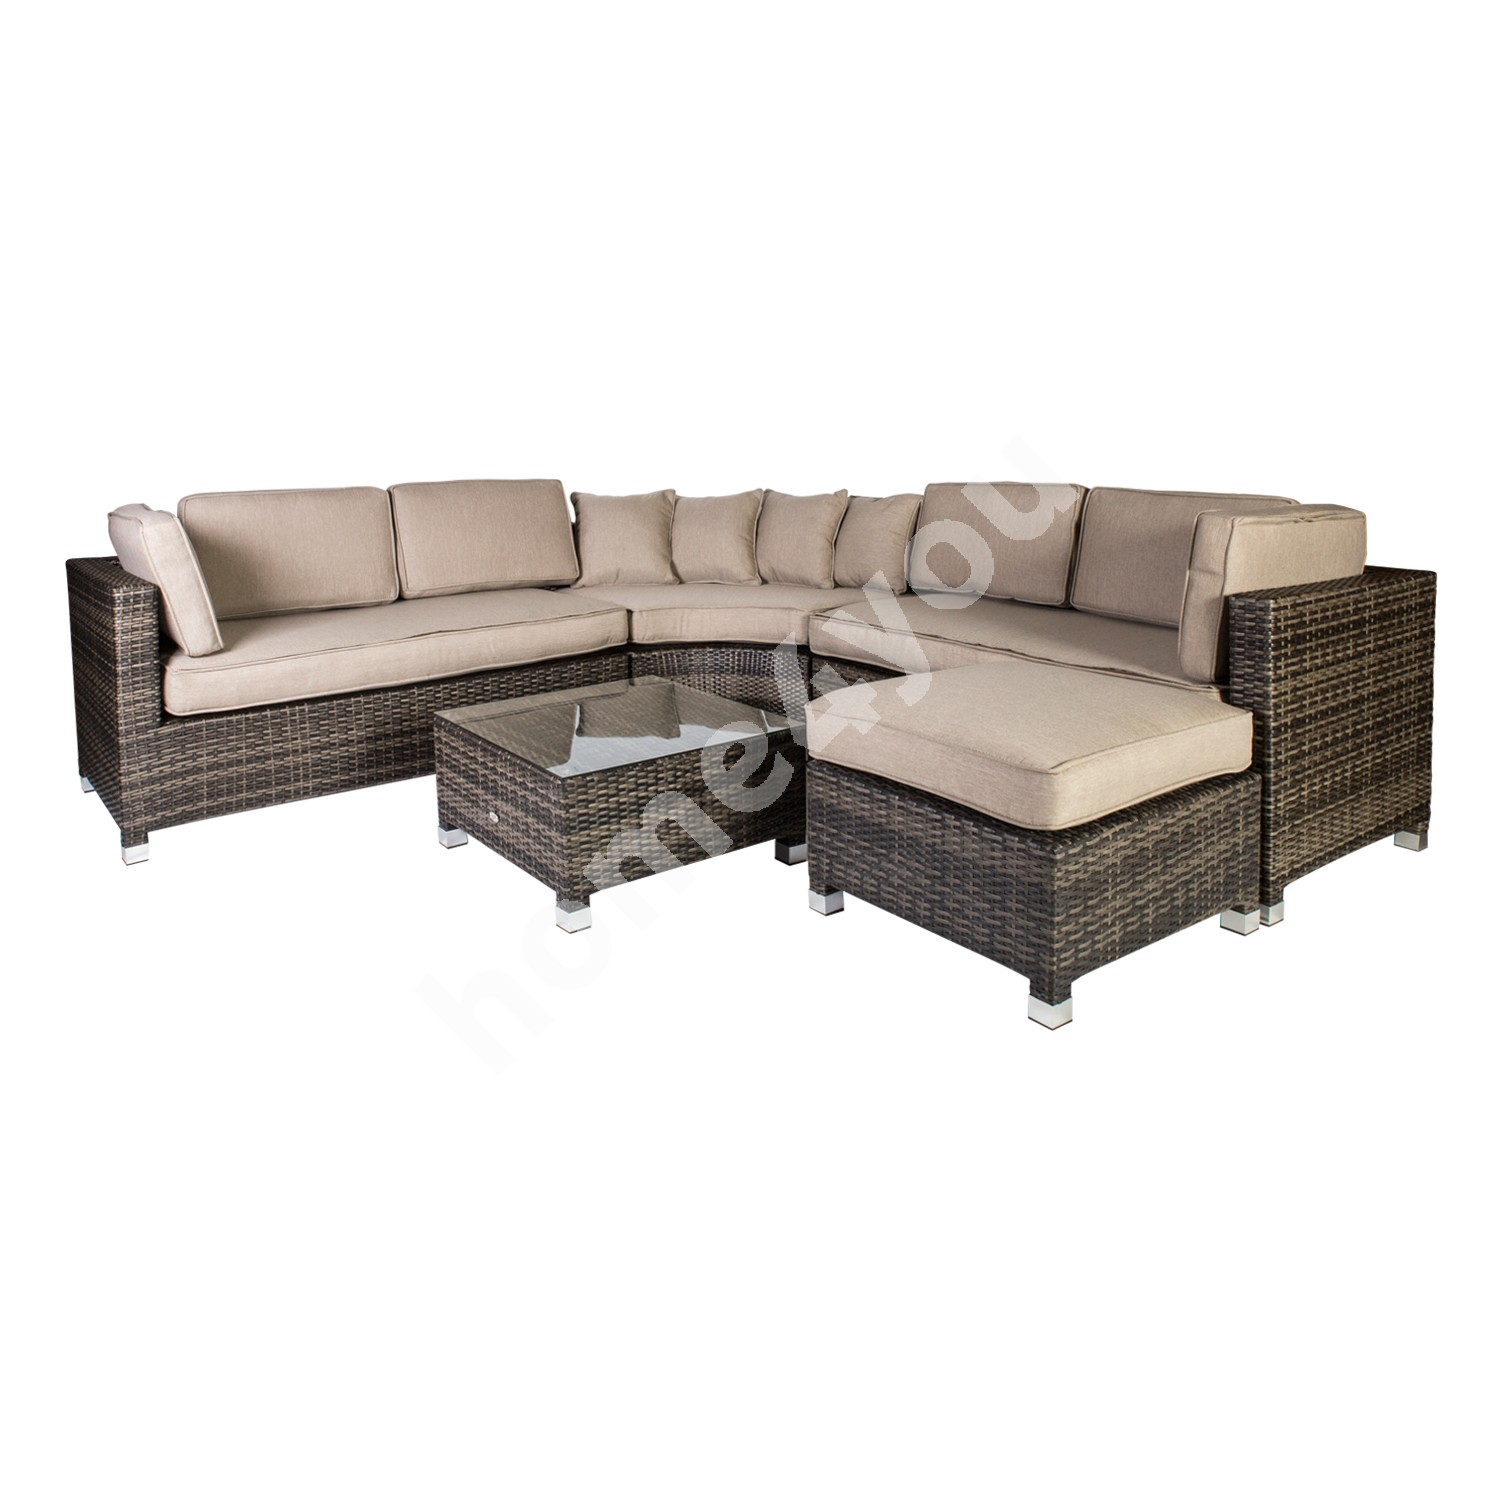 Set DAWSON with cushions, table, corner sofa and ottoman, steel frame with plastic wicker, color: dark brown